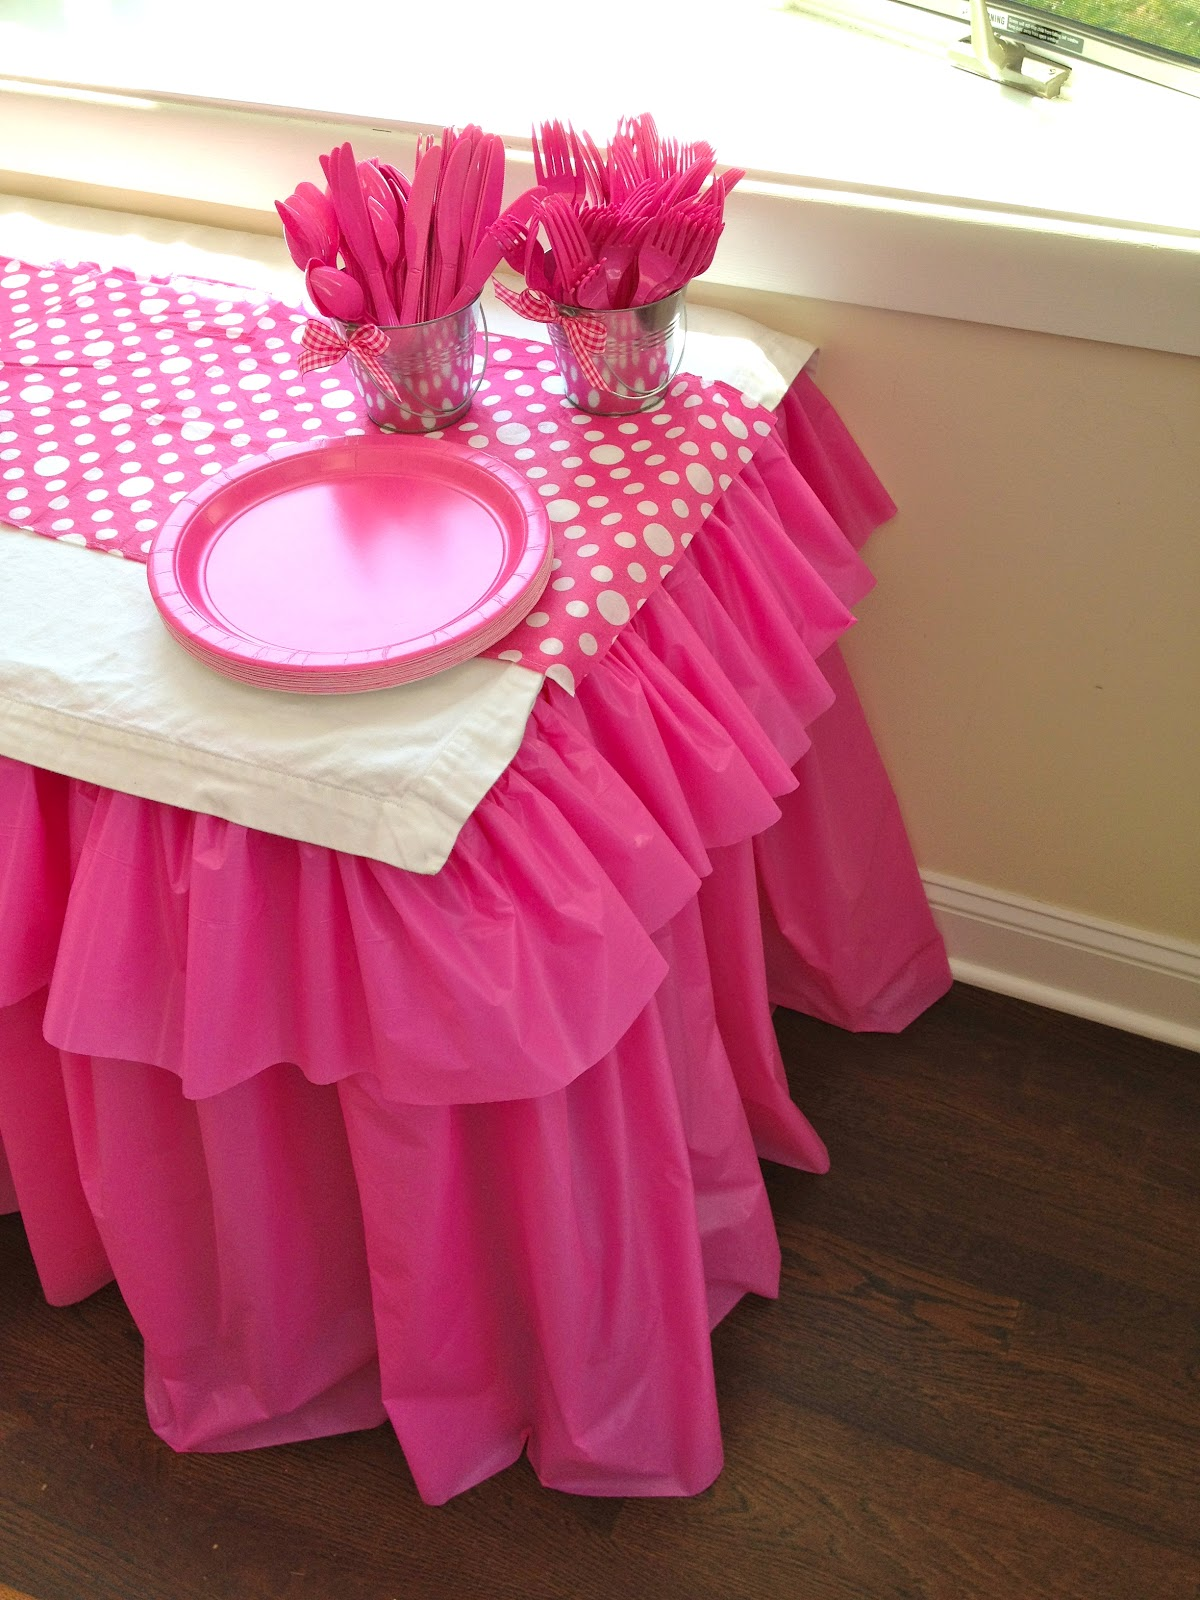 Diy Table Cover Ideas - Tuesday march 27 2012